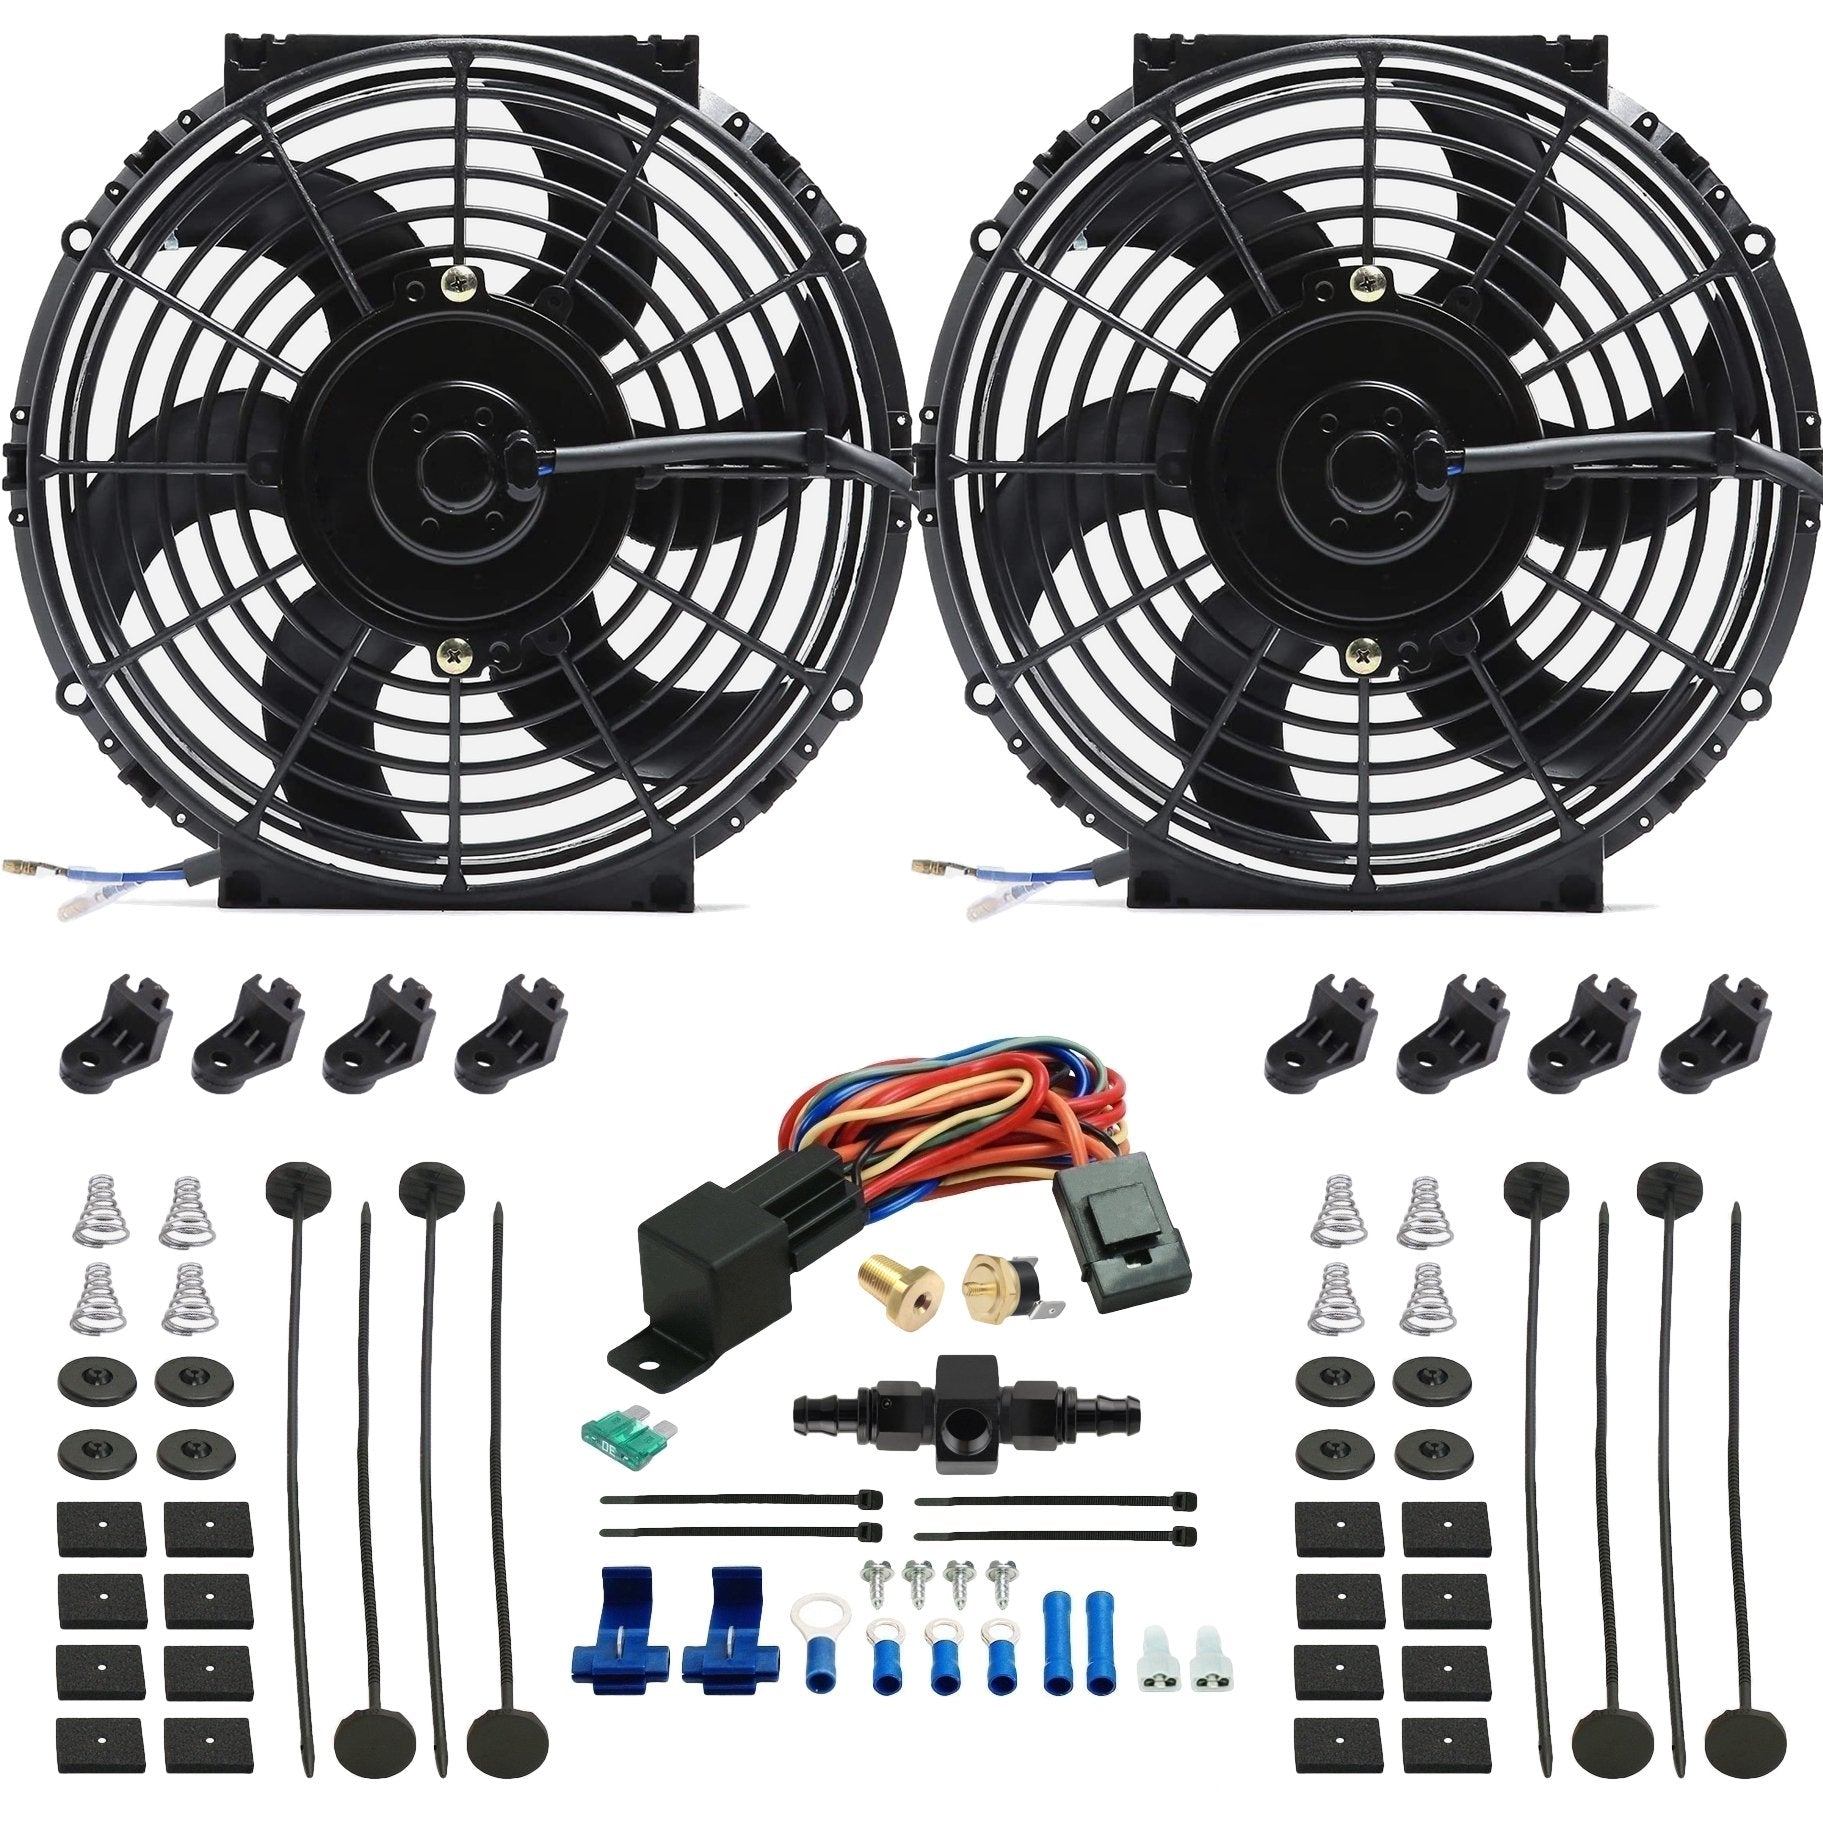 "Dual 10"" Inch Electric Engine Radiator Cooling Fans In-Hose AN Fitting Thermostat Temp Switch Kit-Dual Electric Fans-American Volt-4AN-140'F On - 125'F Off-American Volt"